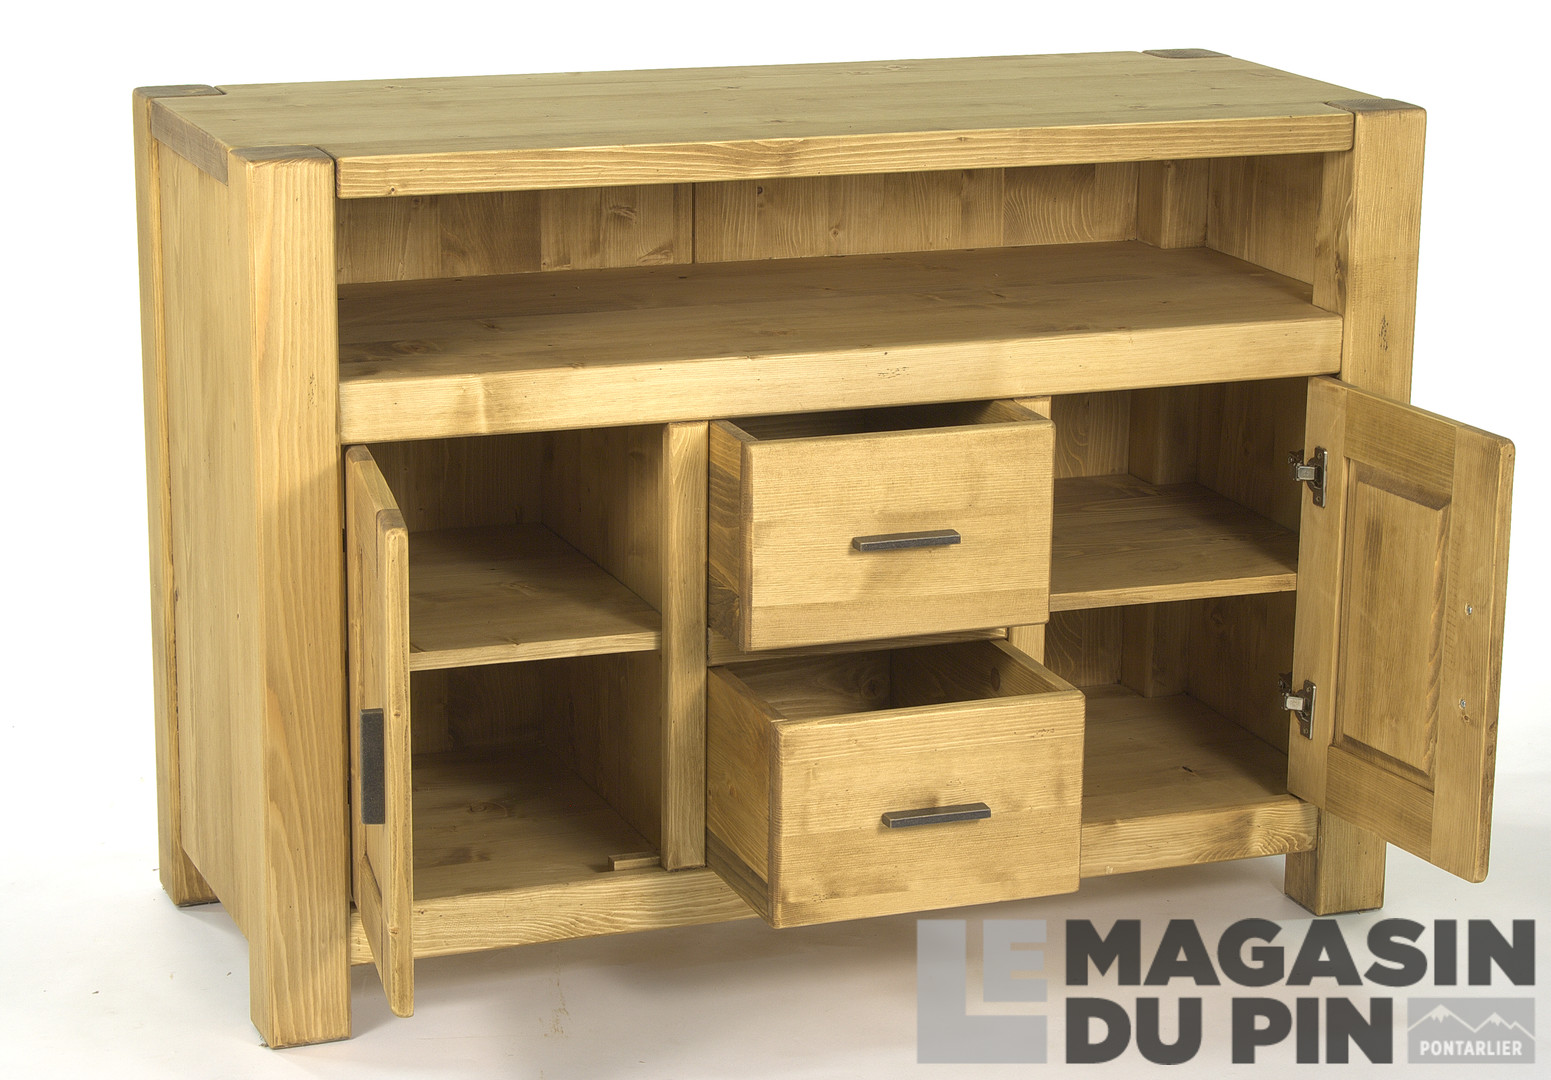 Meuble tv haut en pin massif adriana le magasin du pin for Meuble tv 70 cm de haut